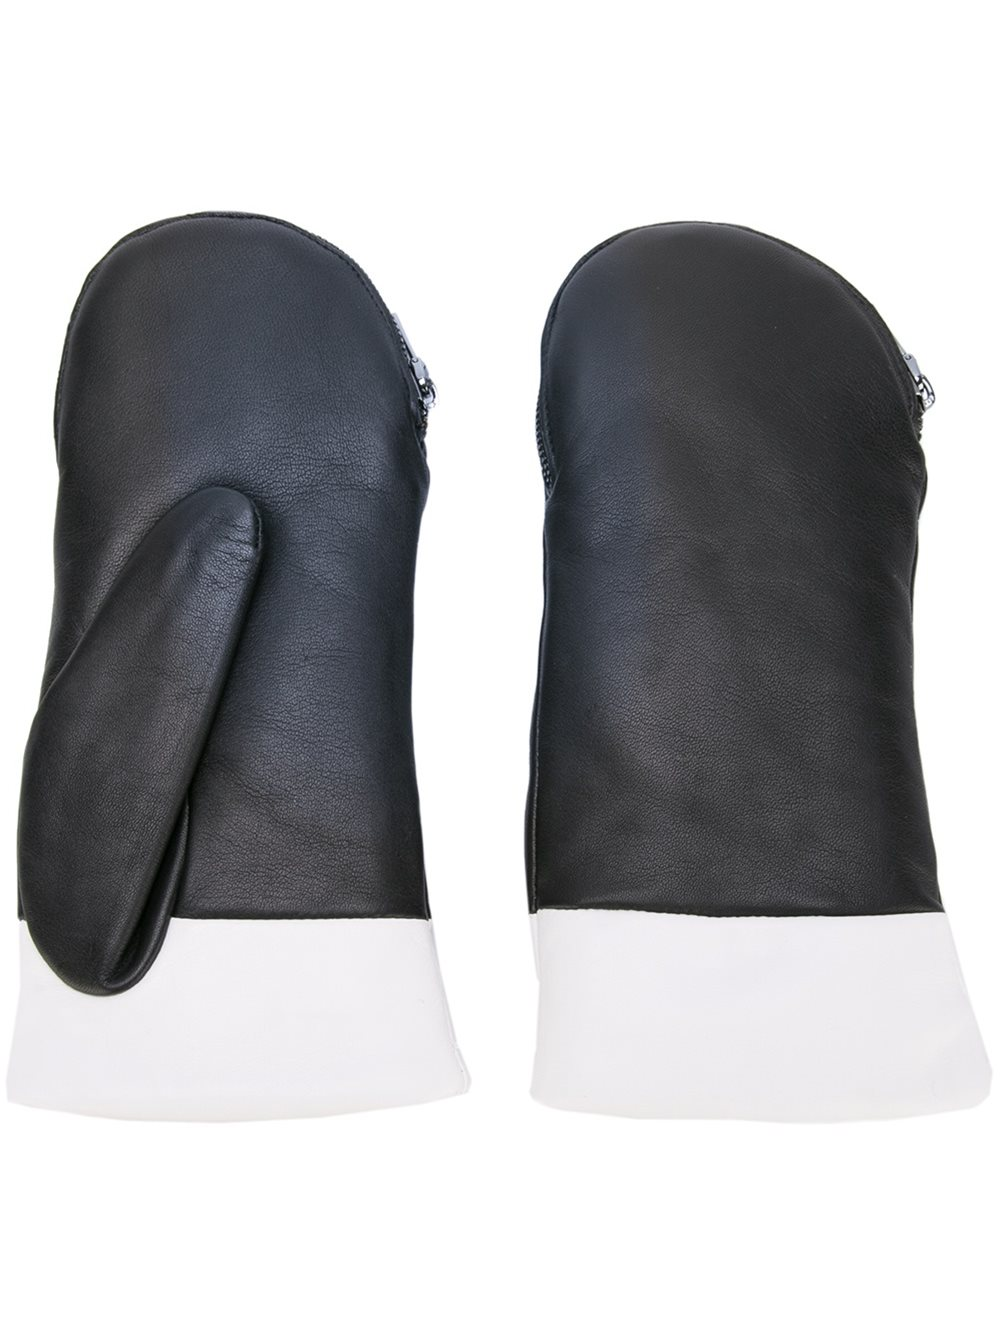 3282159ed6ce Kenzo zipped mitts Homme Accessories,kenzo pas cher,mode pas chere,Kenzo-